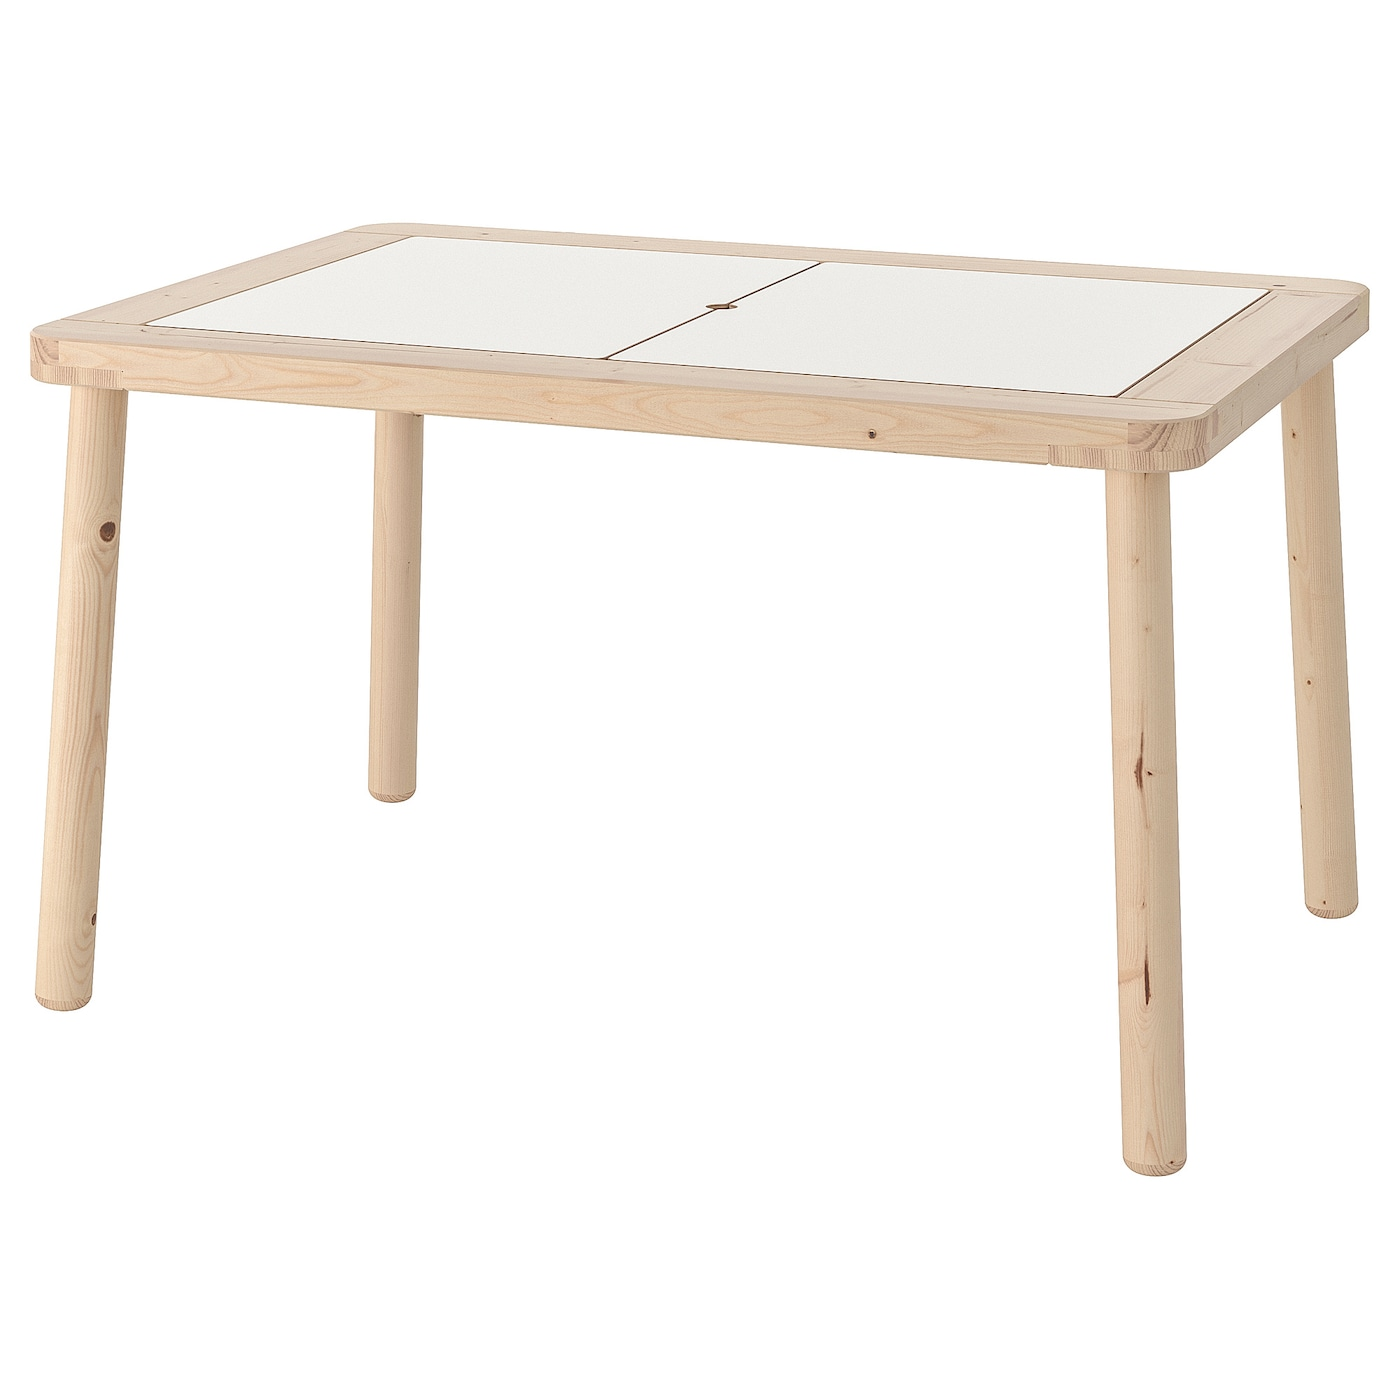 Flisat Children S Table 32 5 8x22 7 8 Ikea